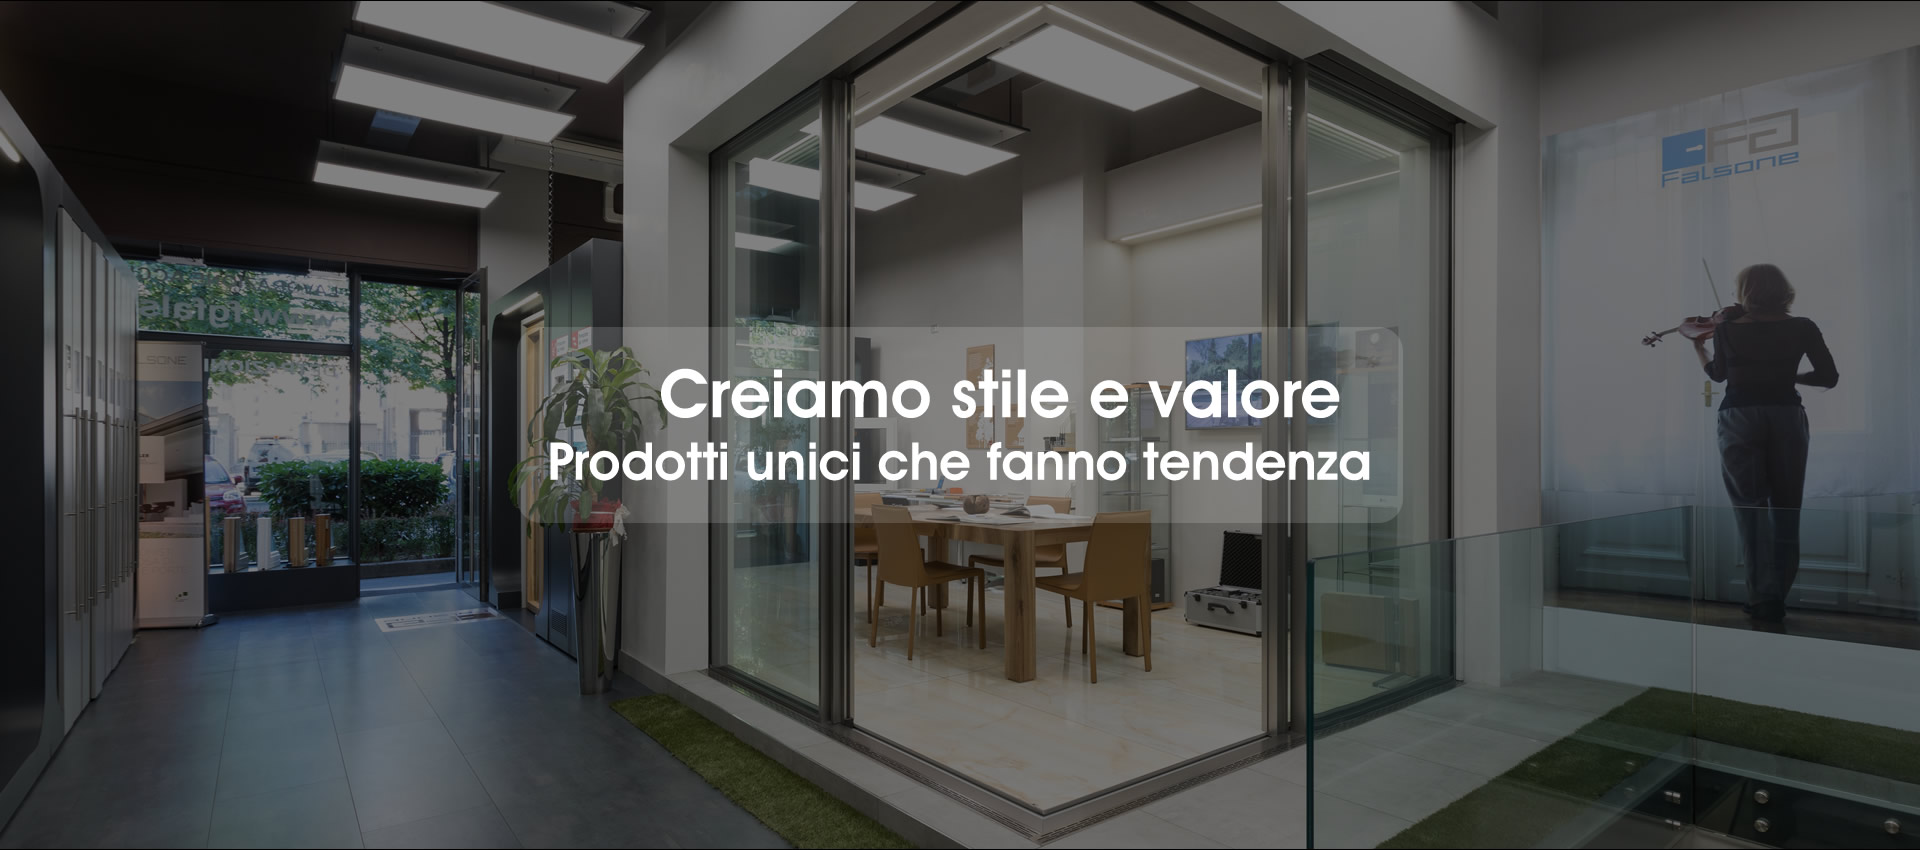 Immagine showroom FG Falsone